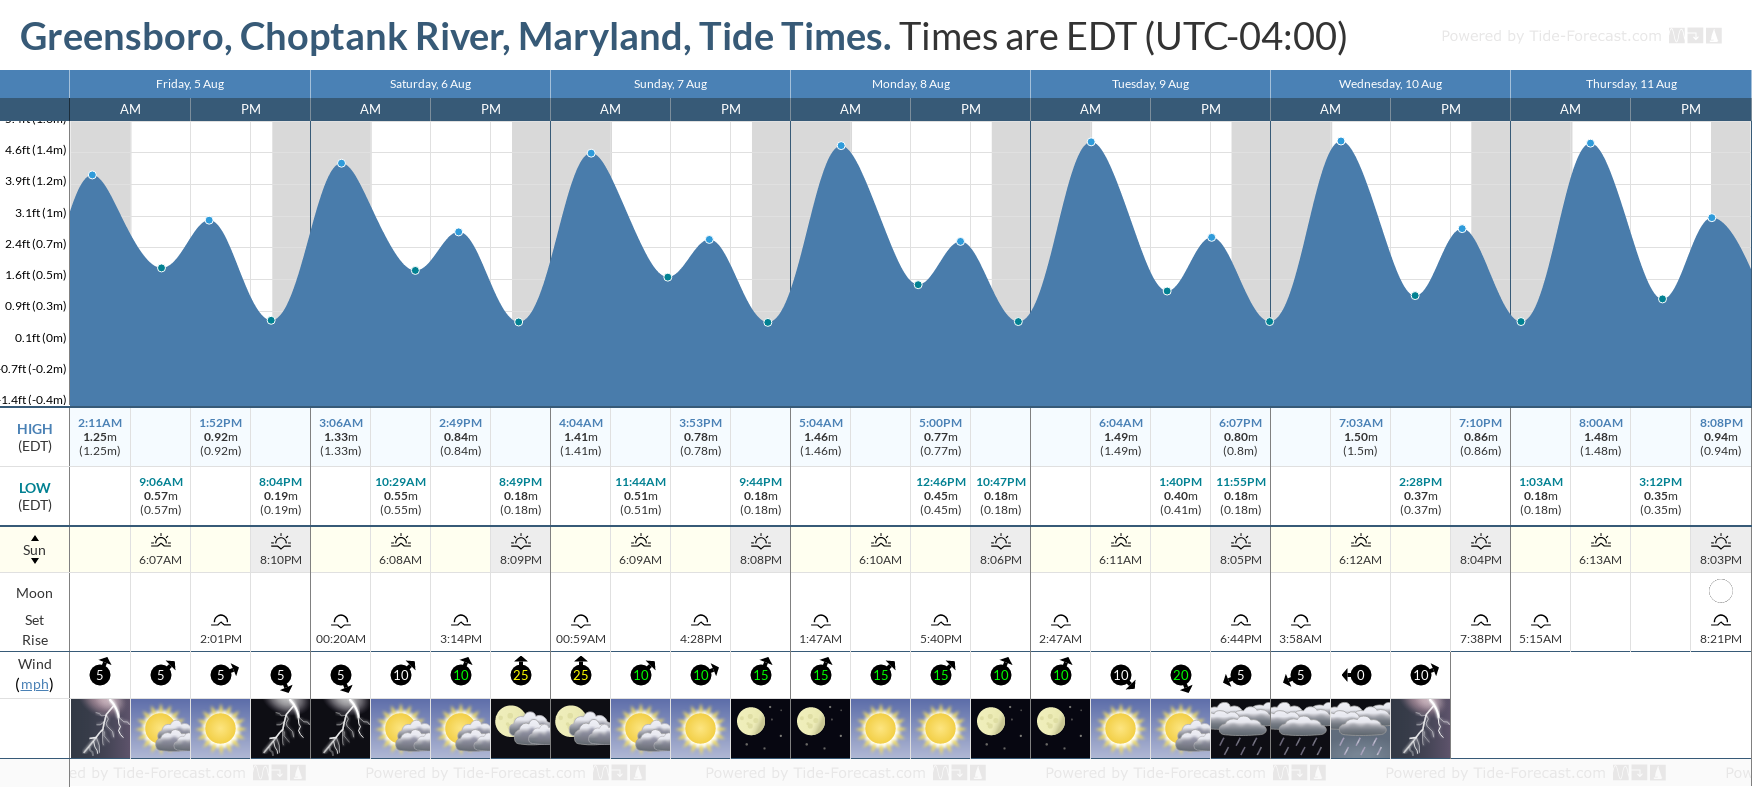 Greensboro, Choptank River, Maryland Tide Chart including high and low tide tide times for the next 7 days